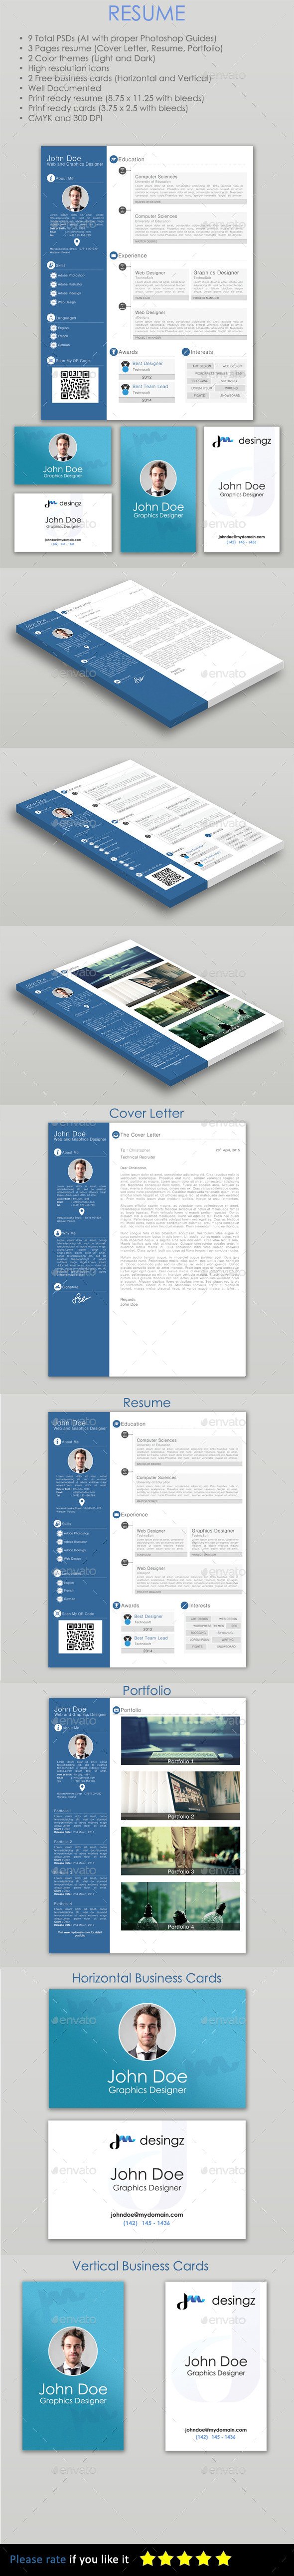 GraphicRiver Resume PSD Template 11136453